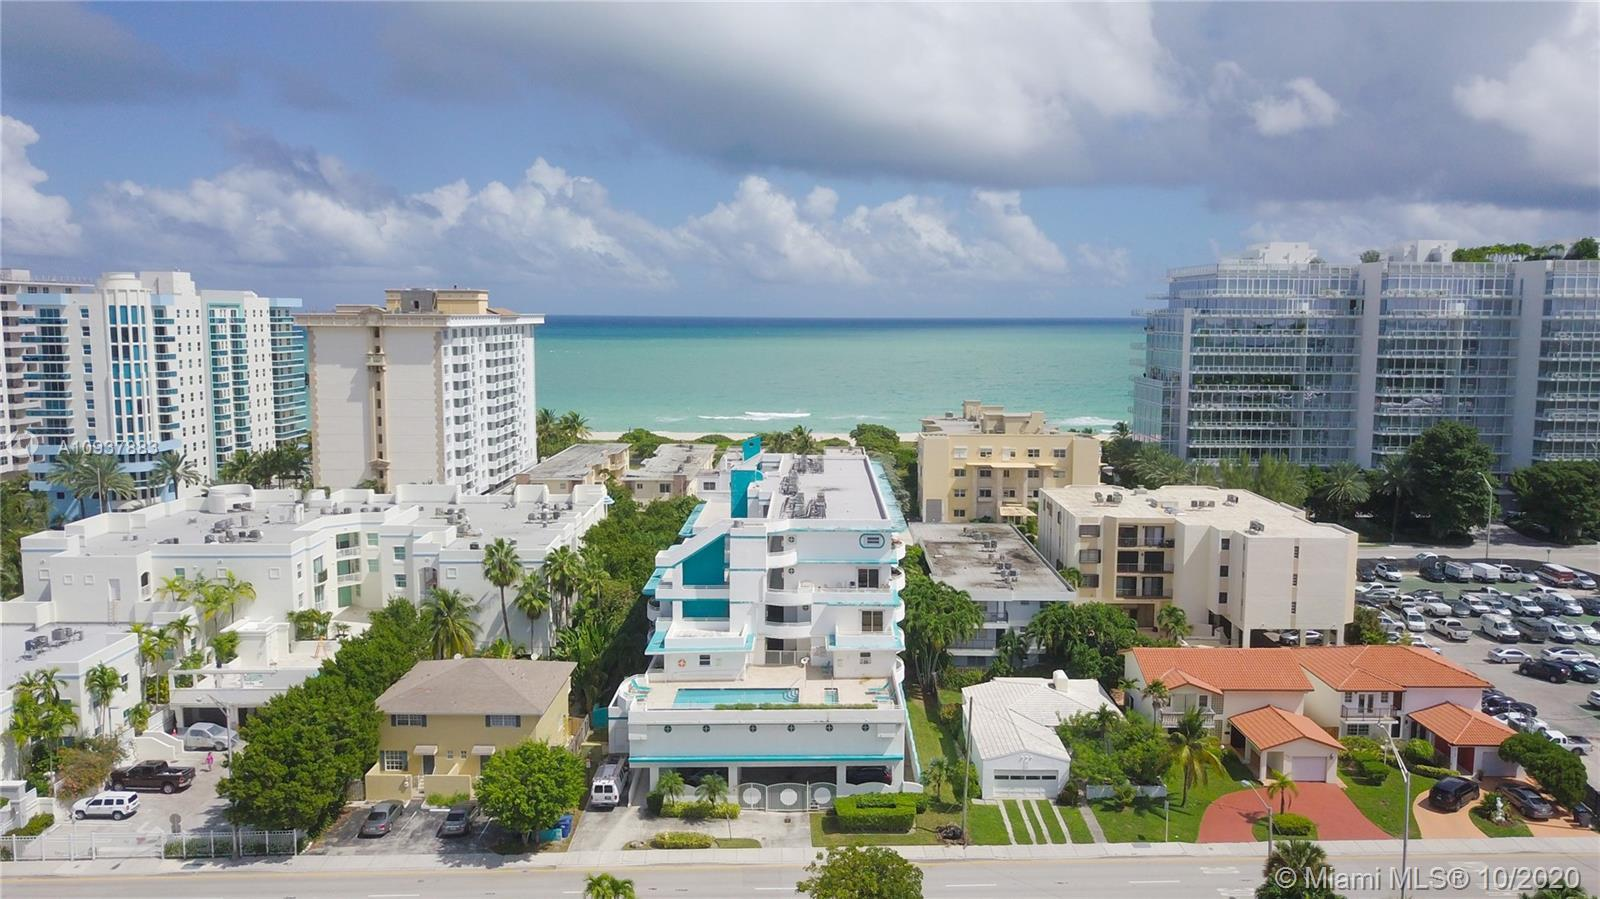 Location Location Location! Across the street from the ocean and the new Four Seasons!! Spacious con